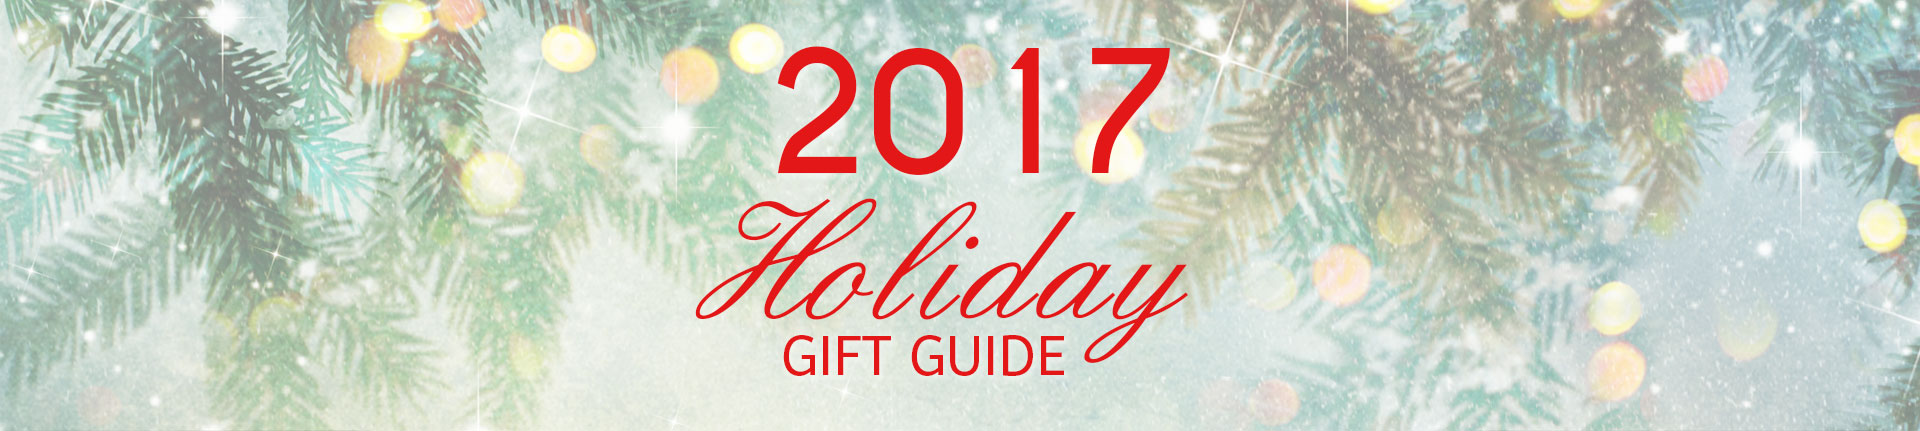 Holiday Gifts Guide